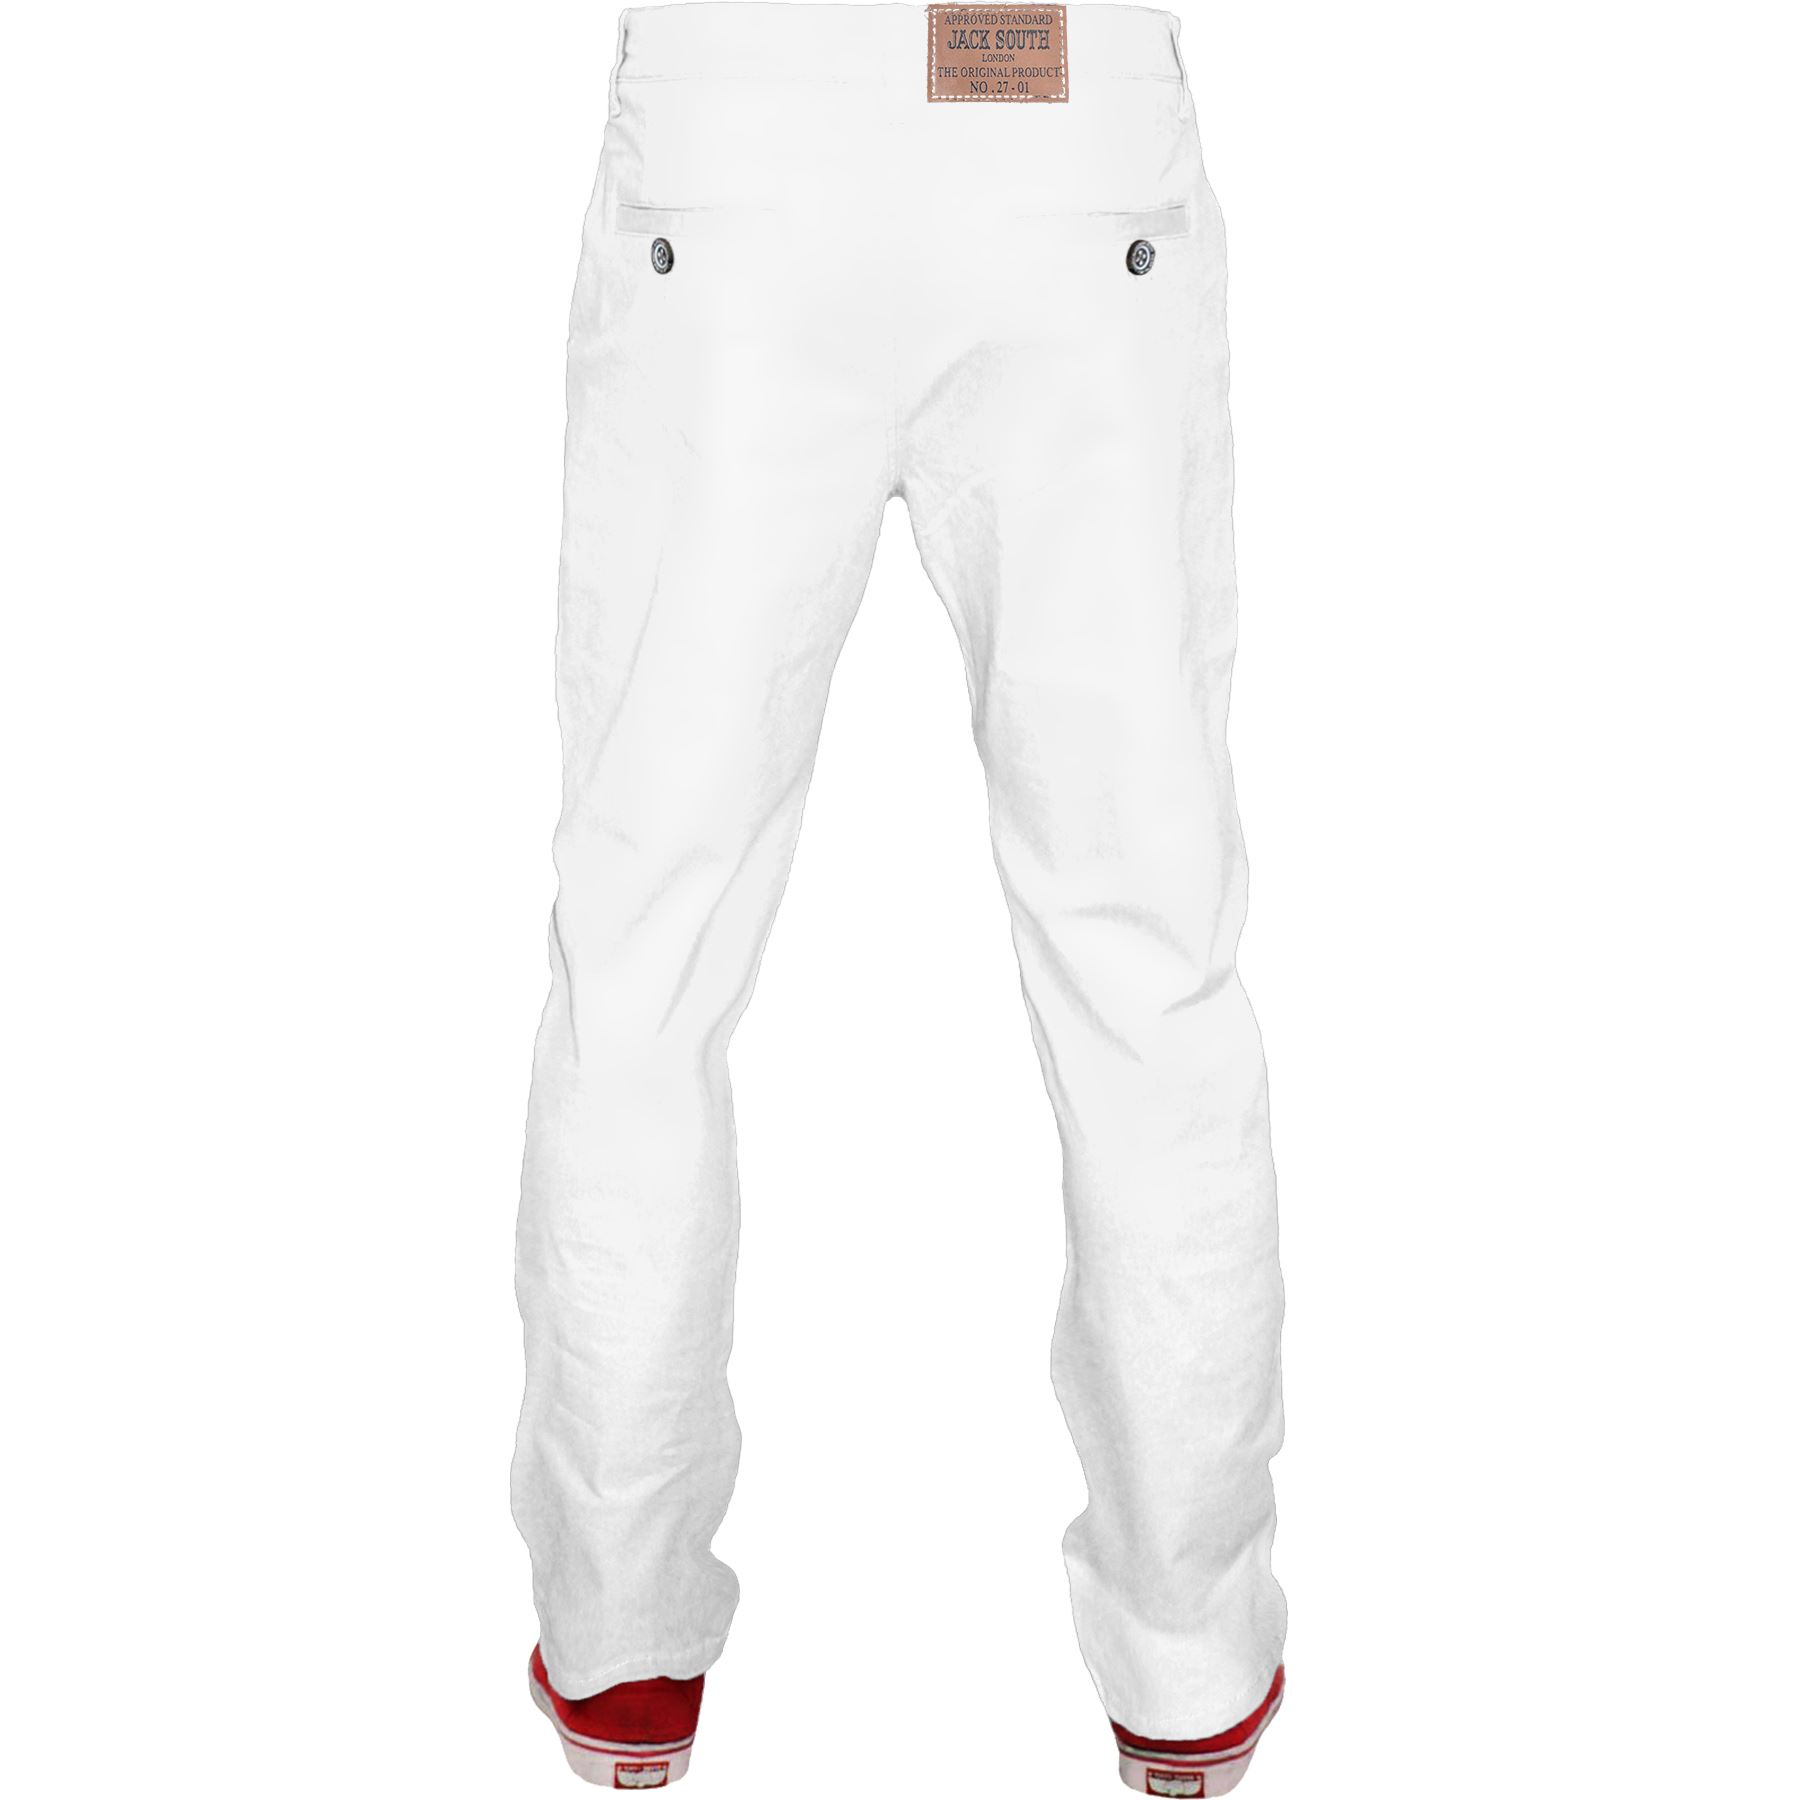 Mens-Chino-Classic-Regular-Fit-Trouser-Casual-Stretch-Spandex-Pants-Size-32-40 thumbnail 31